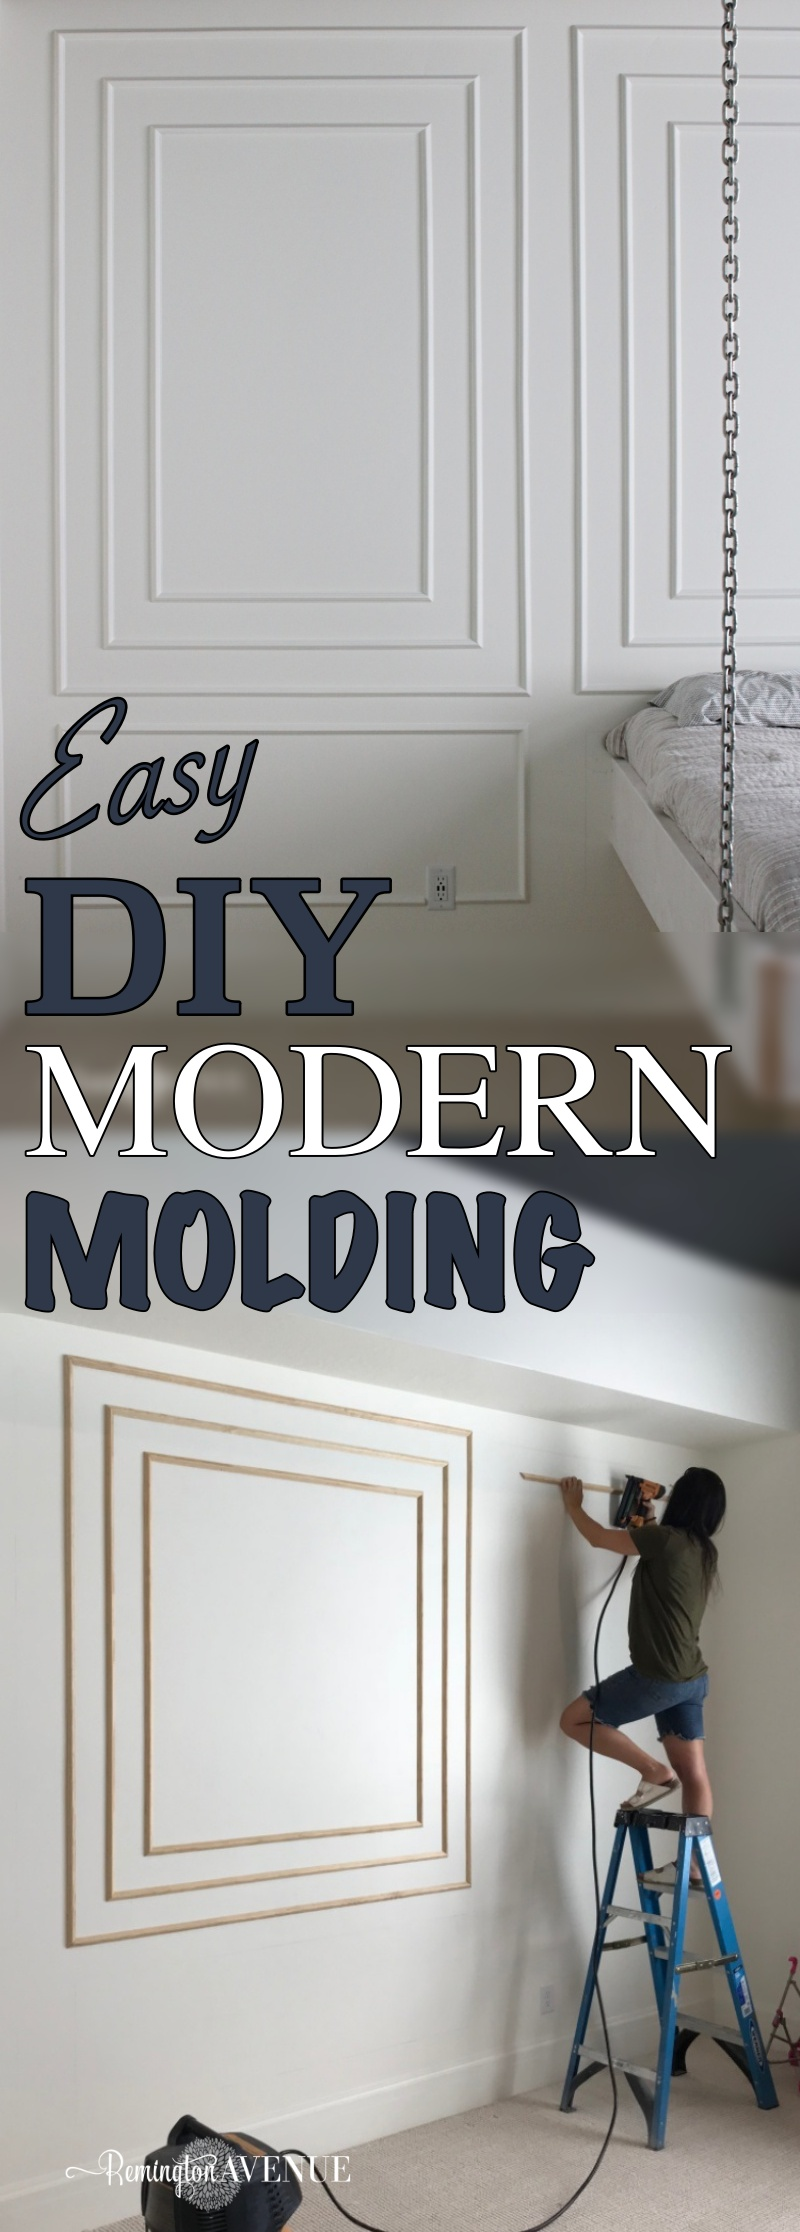 How To Install Modern Wall Molding Remington Avenue